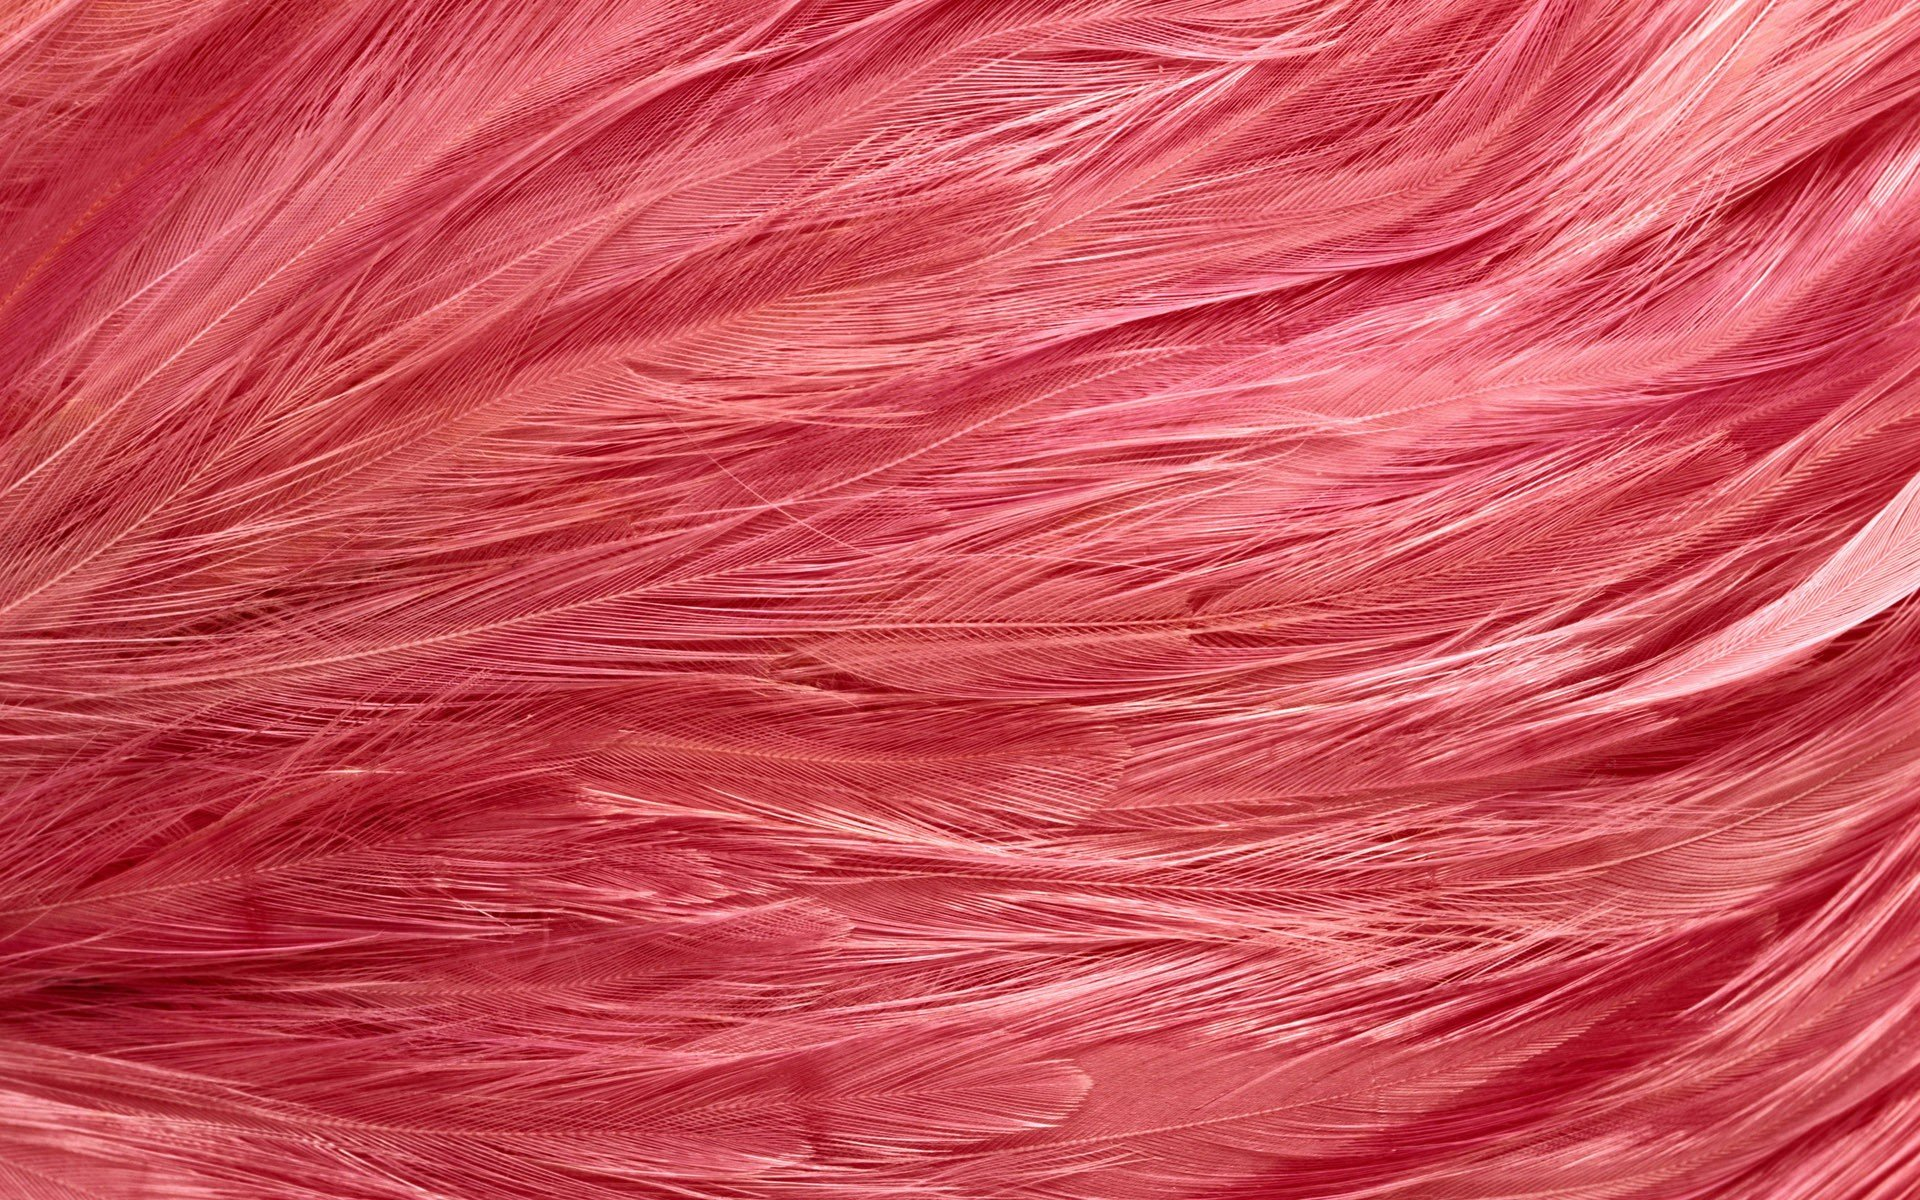 Feathers Wallpapers Pink Feathers Myspace Backgrounds Pink Feathers 1920x1200